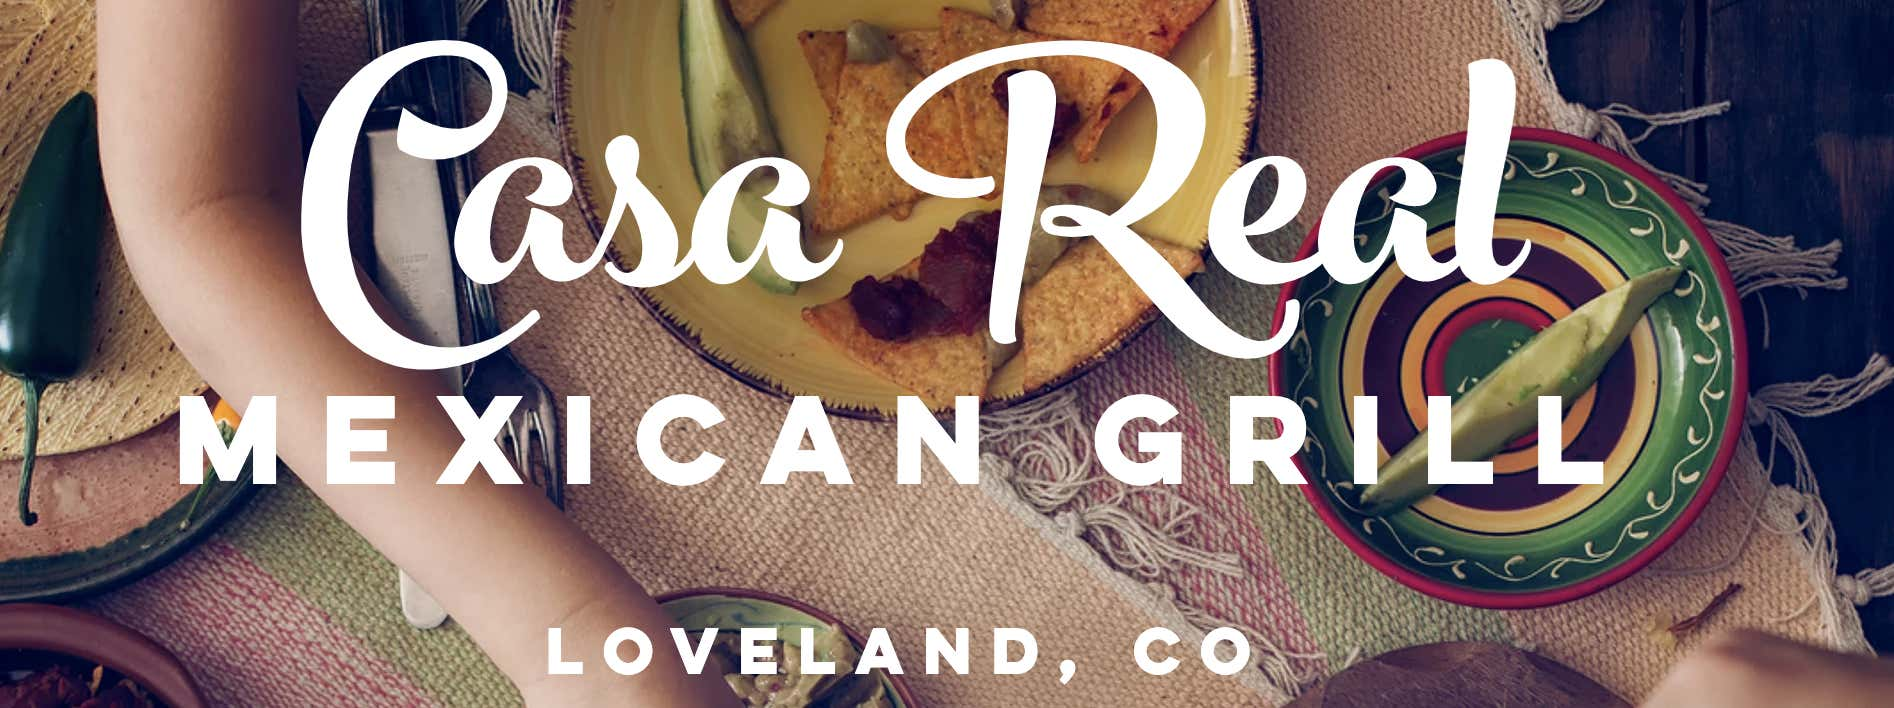 Casa Real Mexican Grill